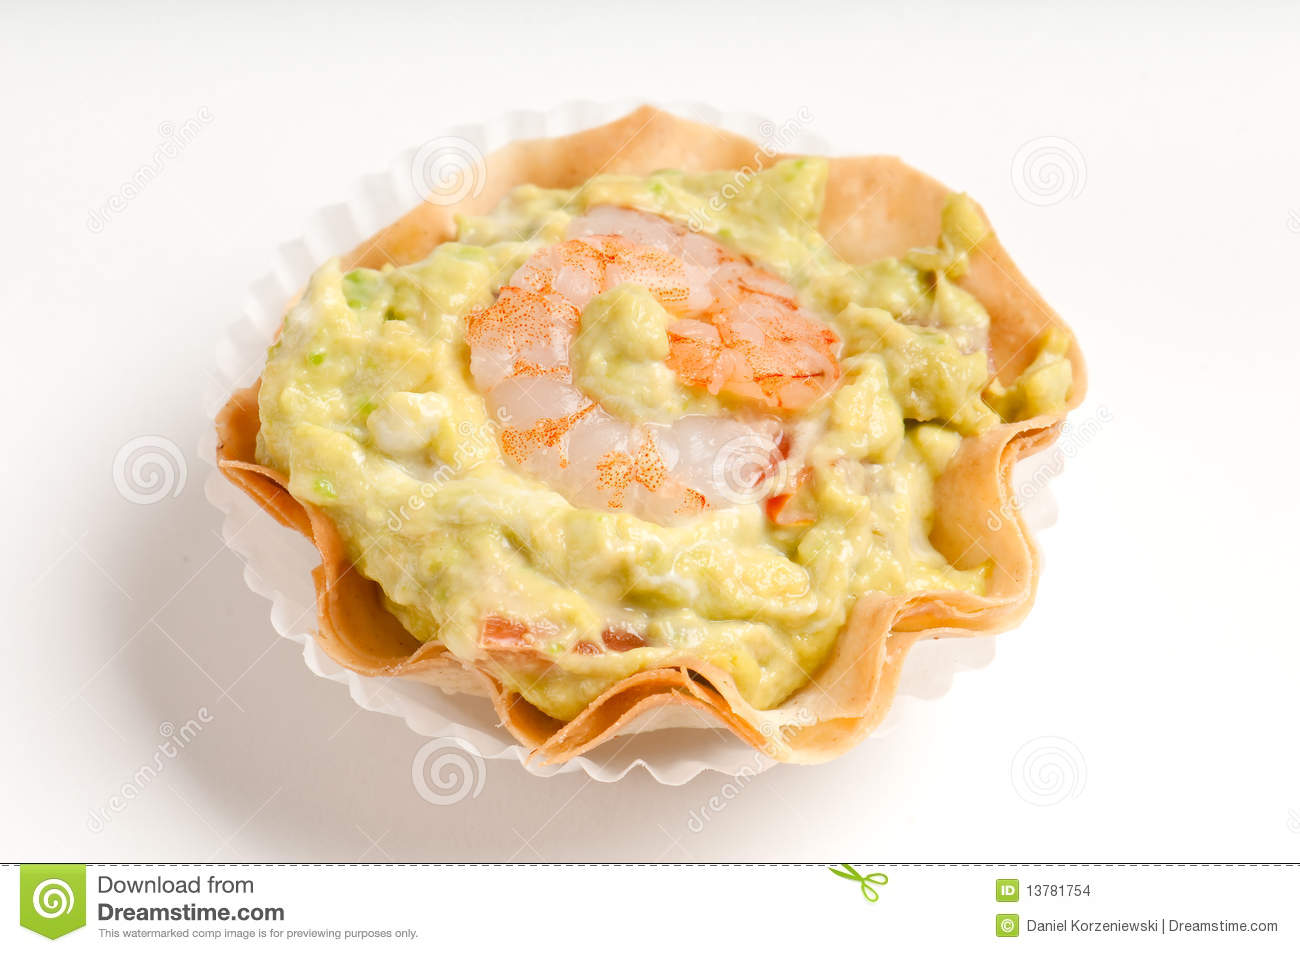 Shrimp and avocado volauvent stock images image 13781754 for What does canape mean in french